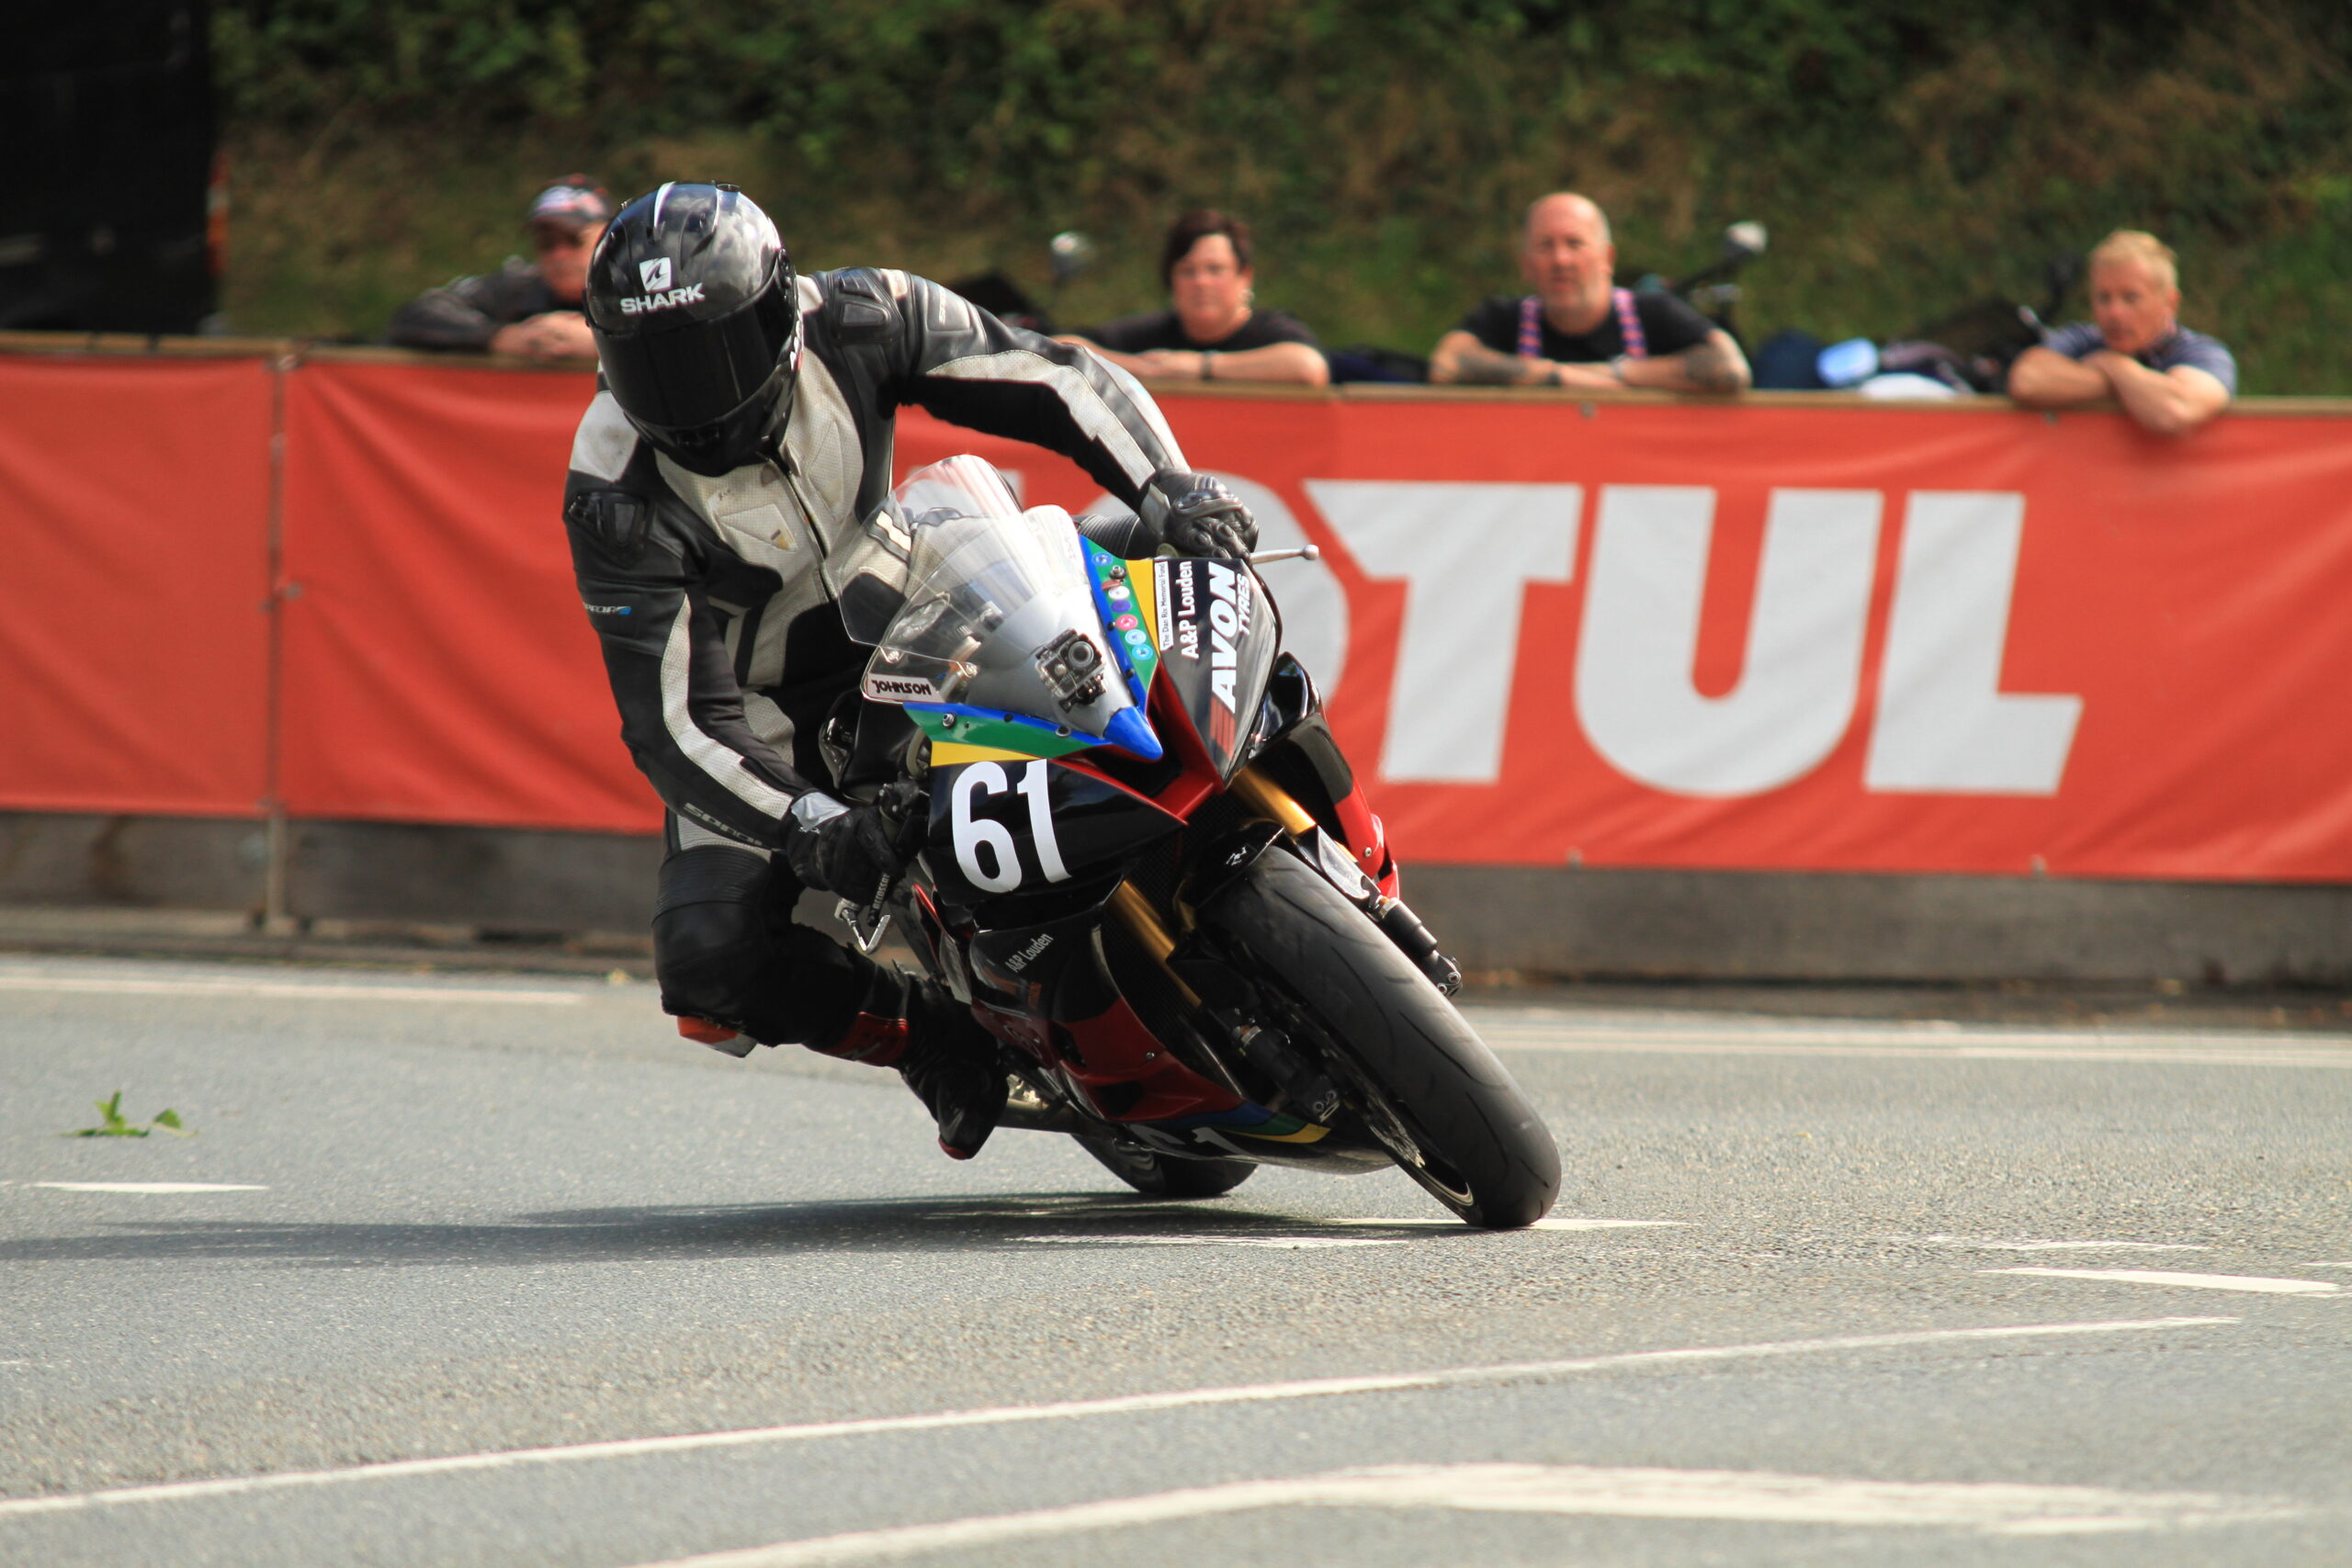 Sam Johnson Concludes Roads Season With Positive Manx Moments